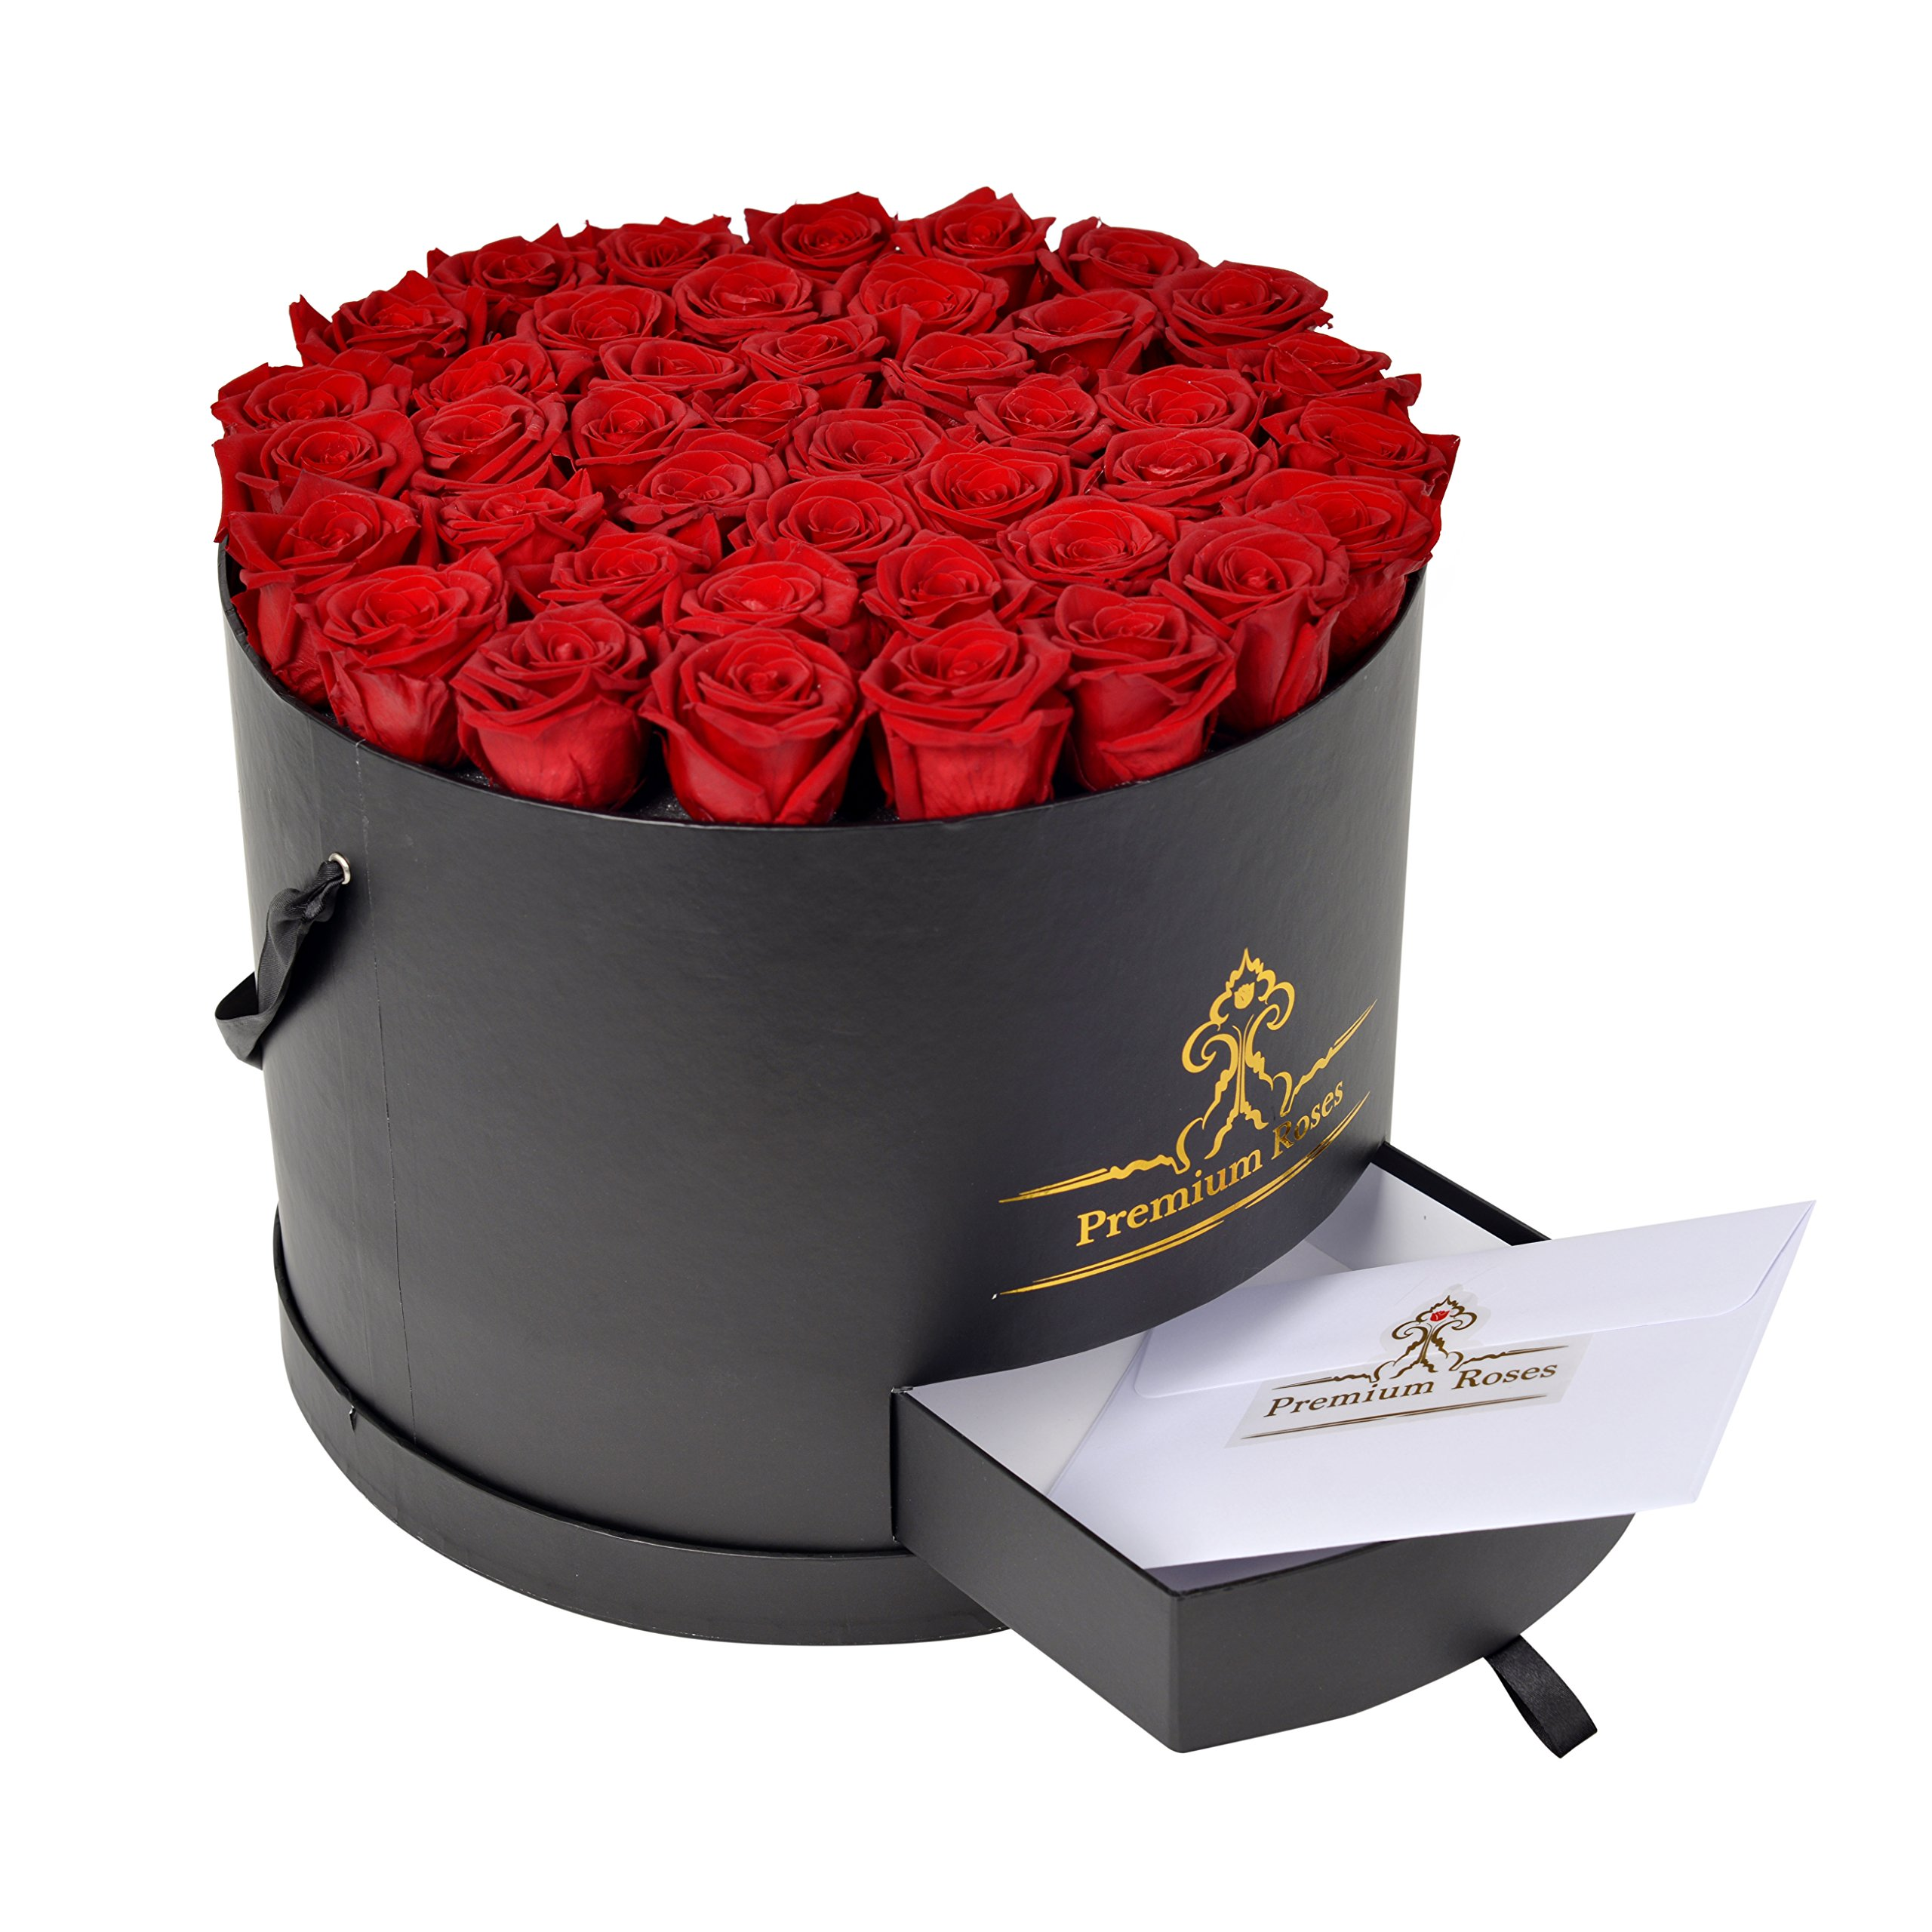 Premium Roses| Real Roses That Last a Year | Fresh Flowers| Roses in a Box (Black Box, Large) by Premium Roses